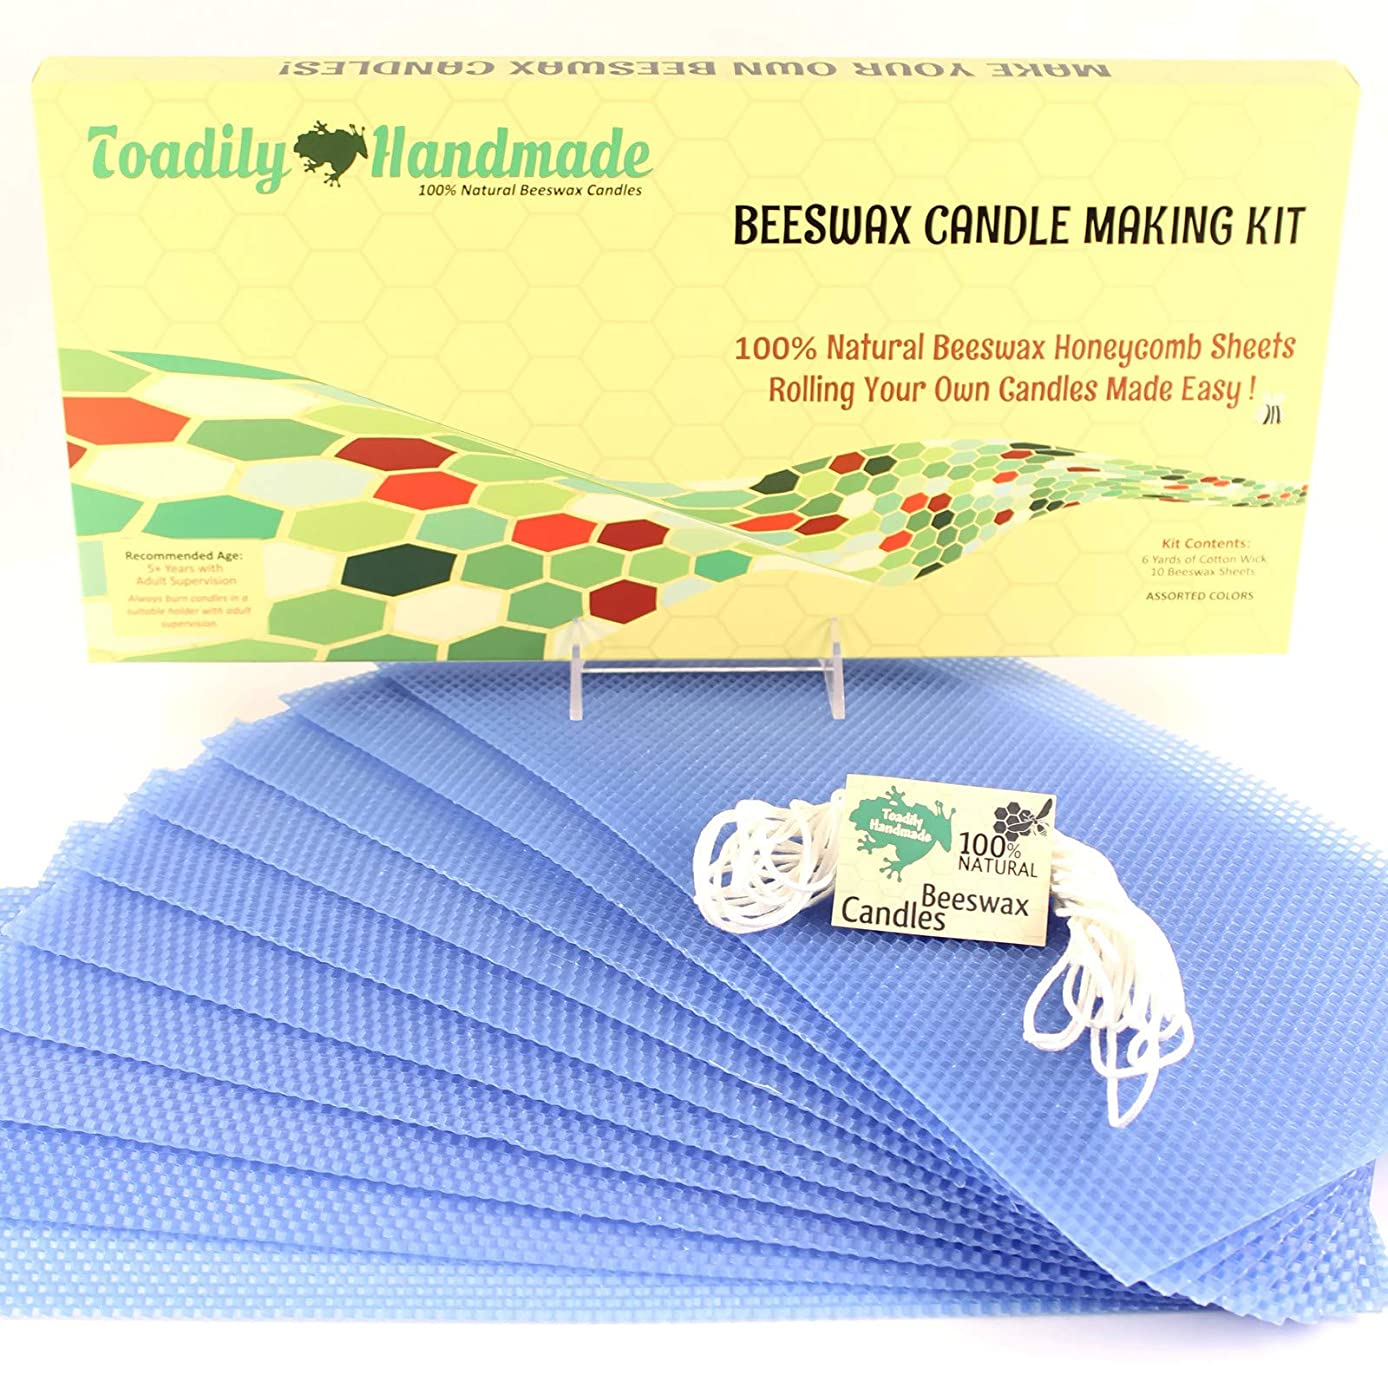 Make Your Own Beeswax Candle Kit - Includes 10 Full Size 100% Beeswax Honeycomb Sheets in Blue and Approx. 6 Yards (18 Feet) of Cotton Wick. Each Beeswax Sheet Measures Approx. 8